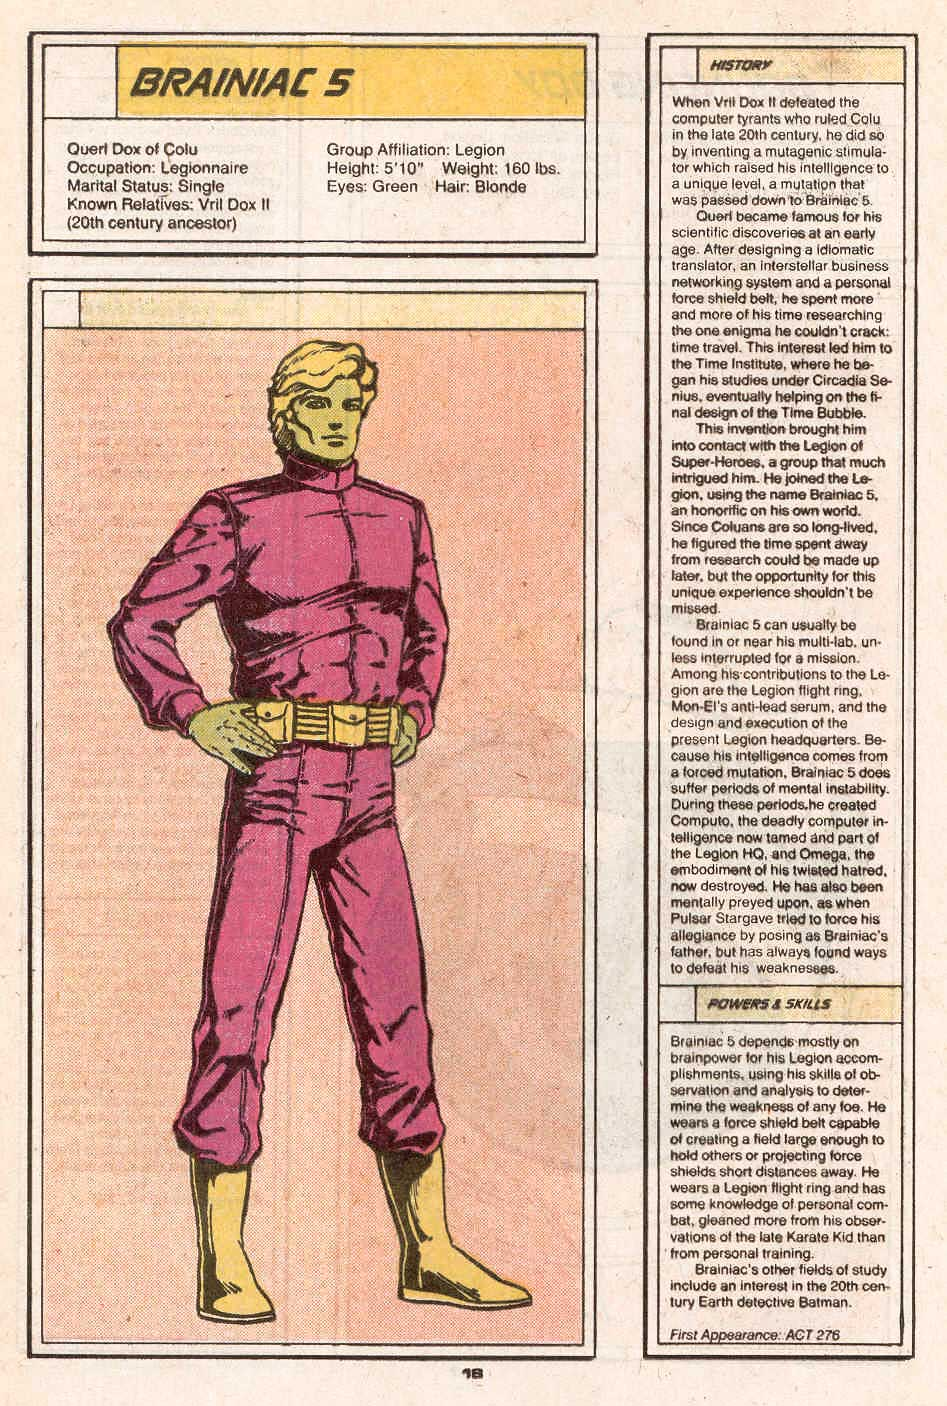 Brainiac 5 by Colleen Doran - Who's Who in the Legion of Super-Heroes #1